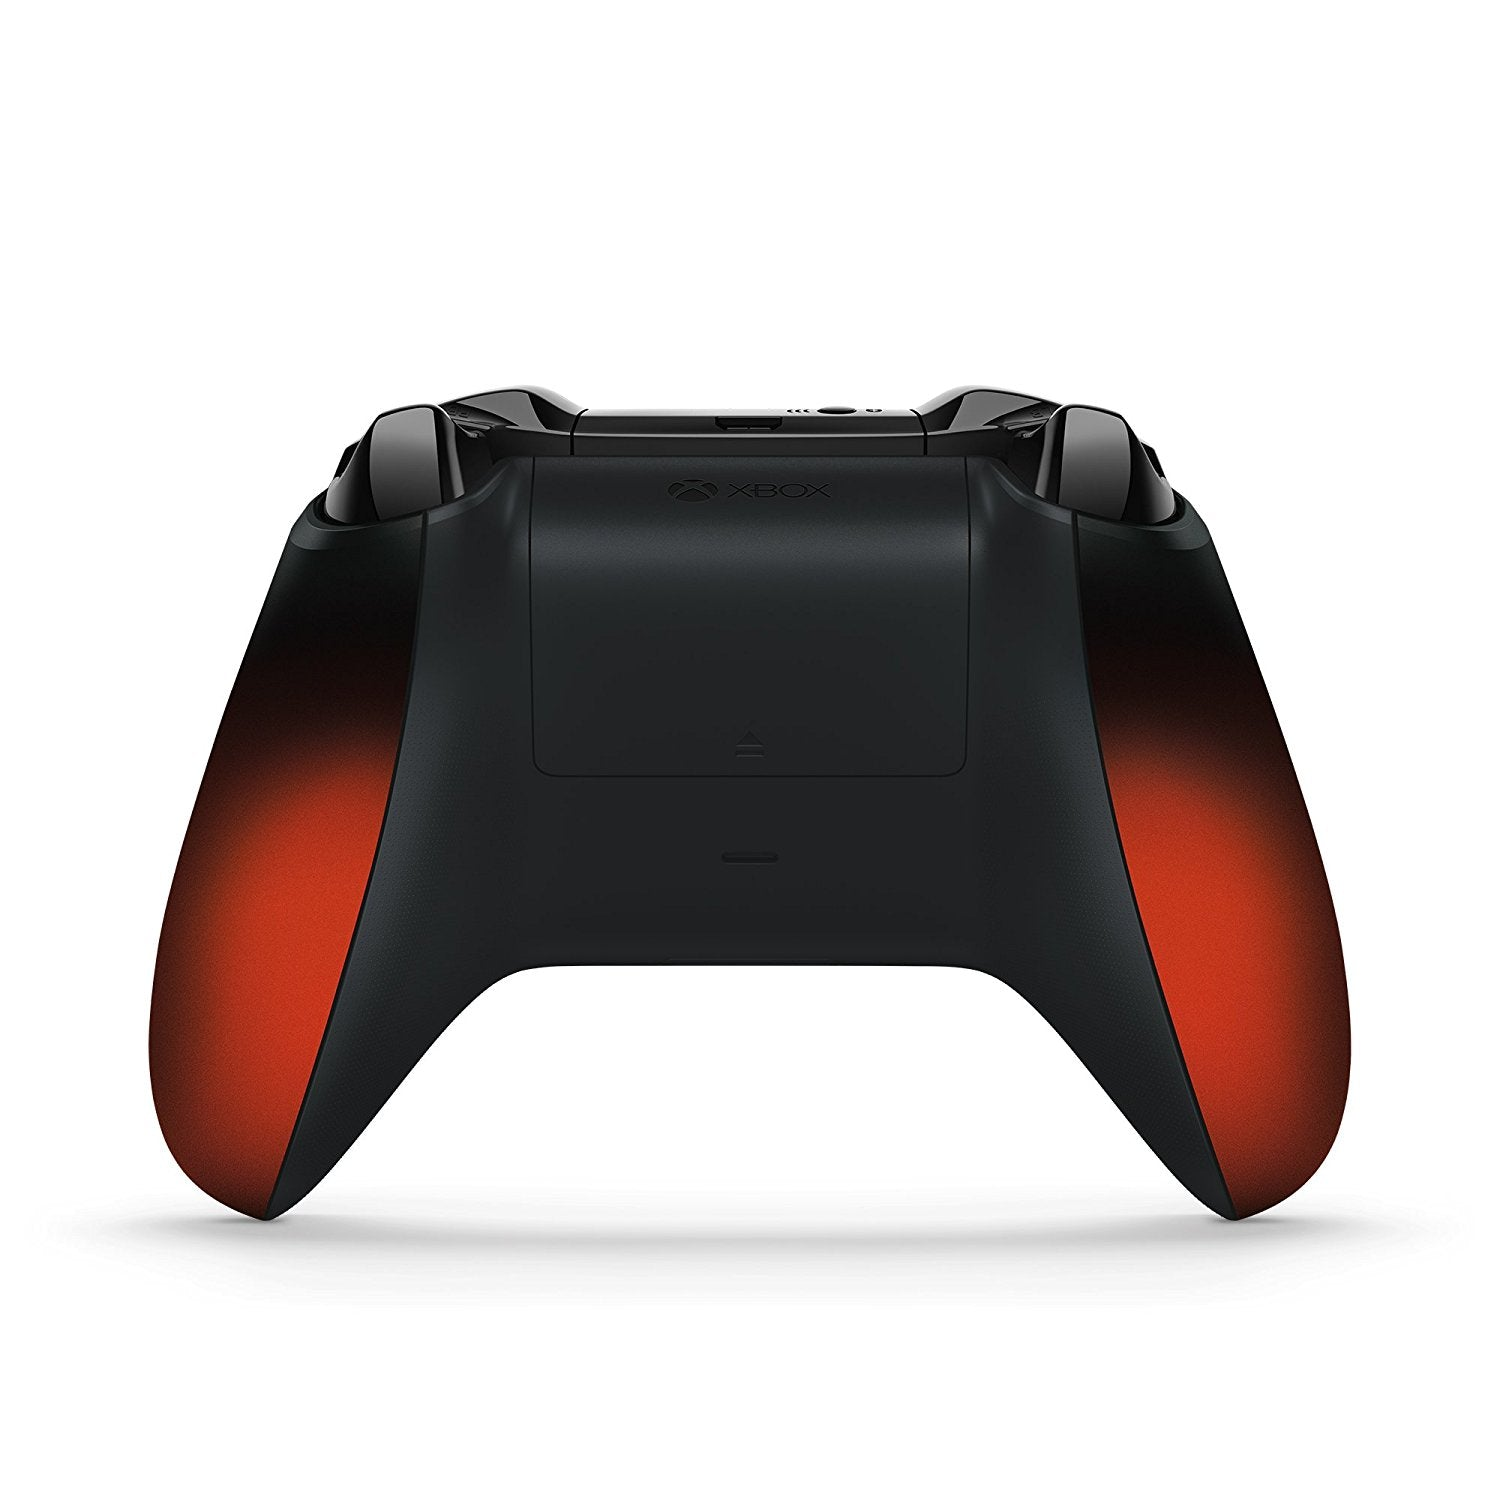 Xbox Wireless Controller Volcano Shadow Special Edition